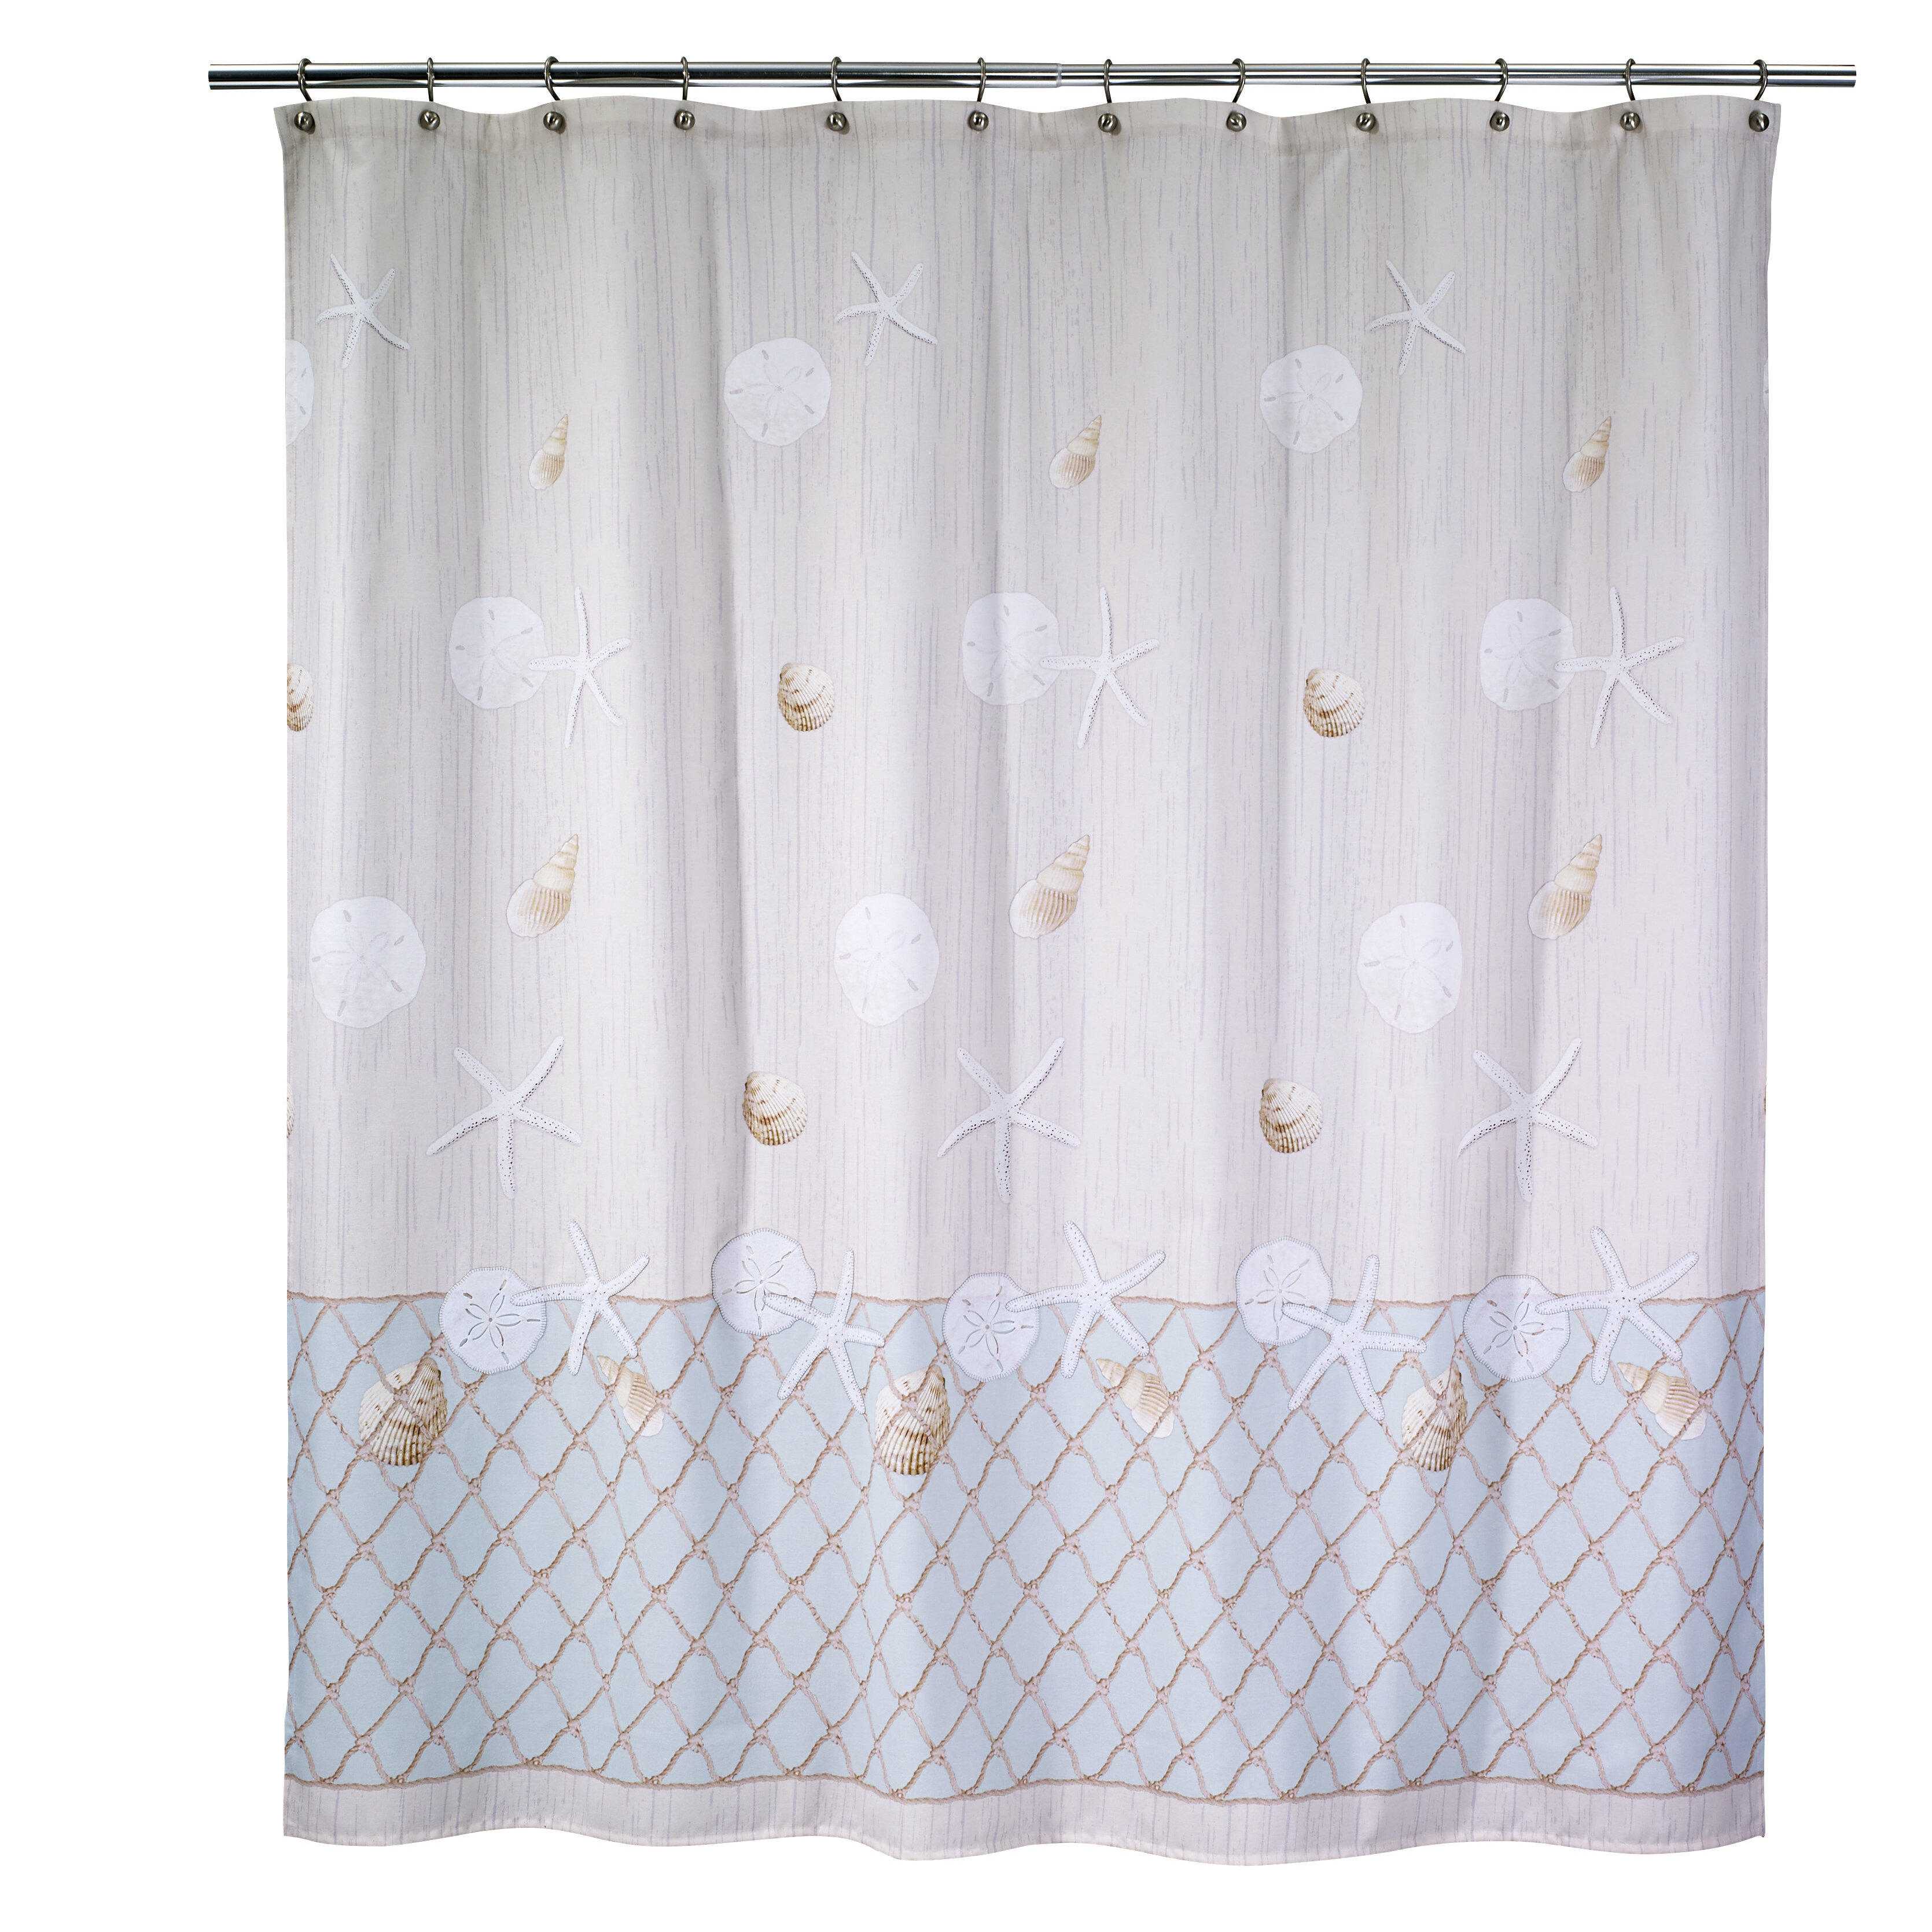 Avanti Linens Seaglass Cotton Shower Curtain Reviews